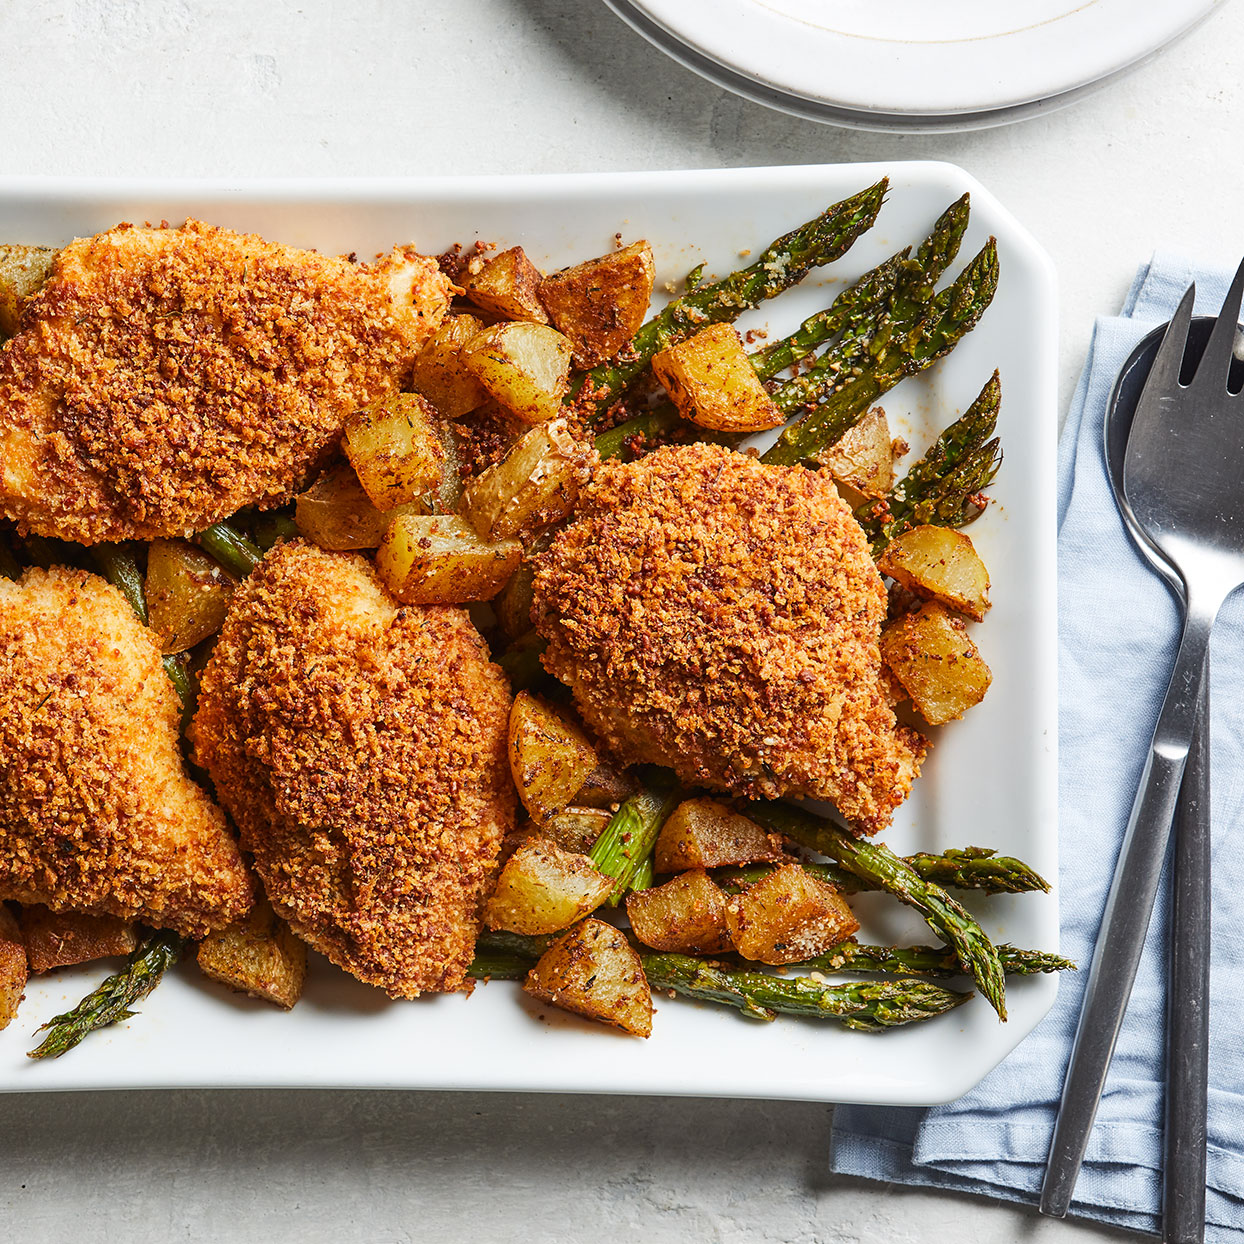 Sheet-Pan Baked Parmesan Chicken with Asparagus & Potatoes